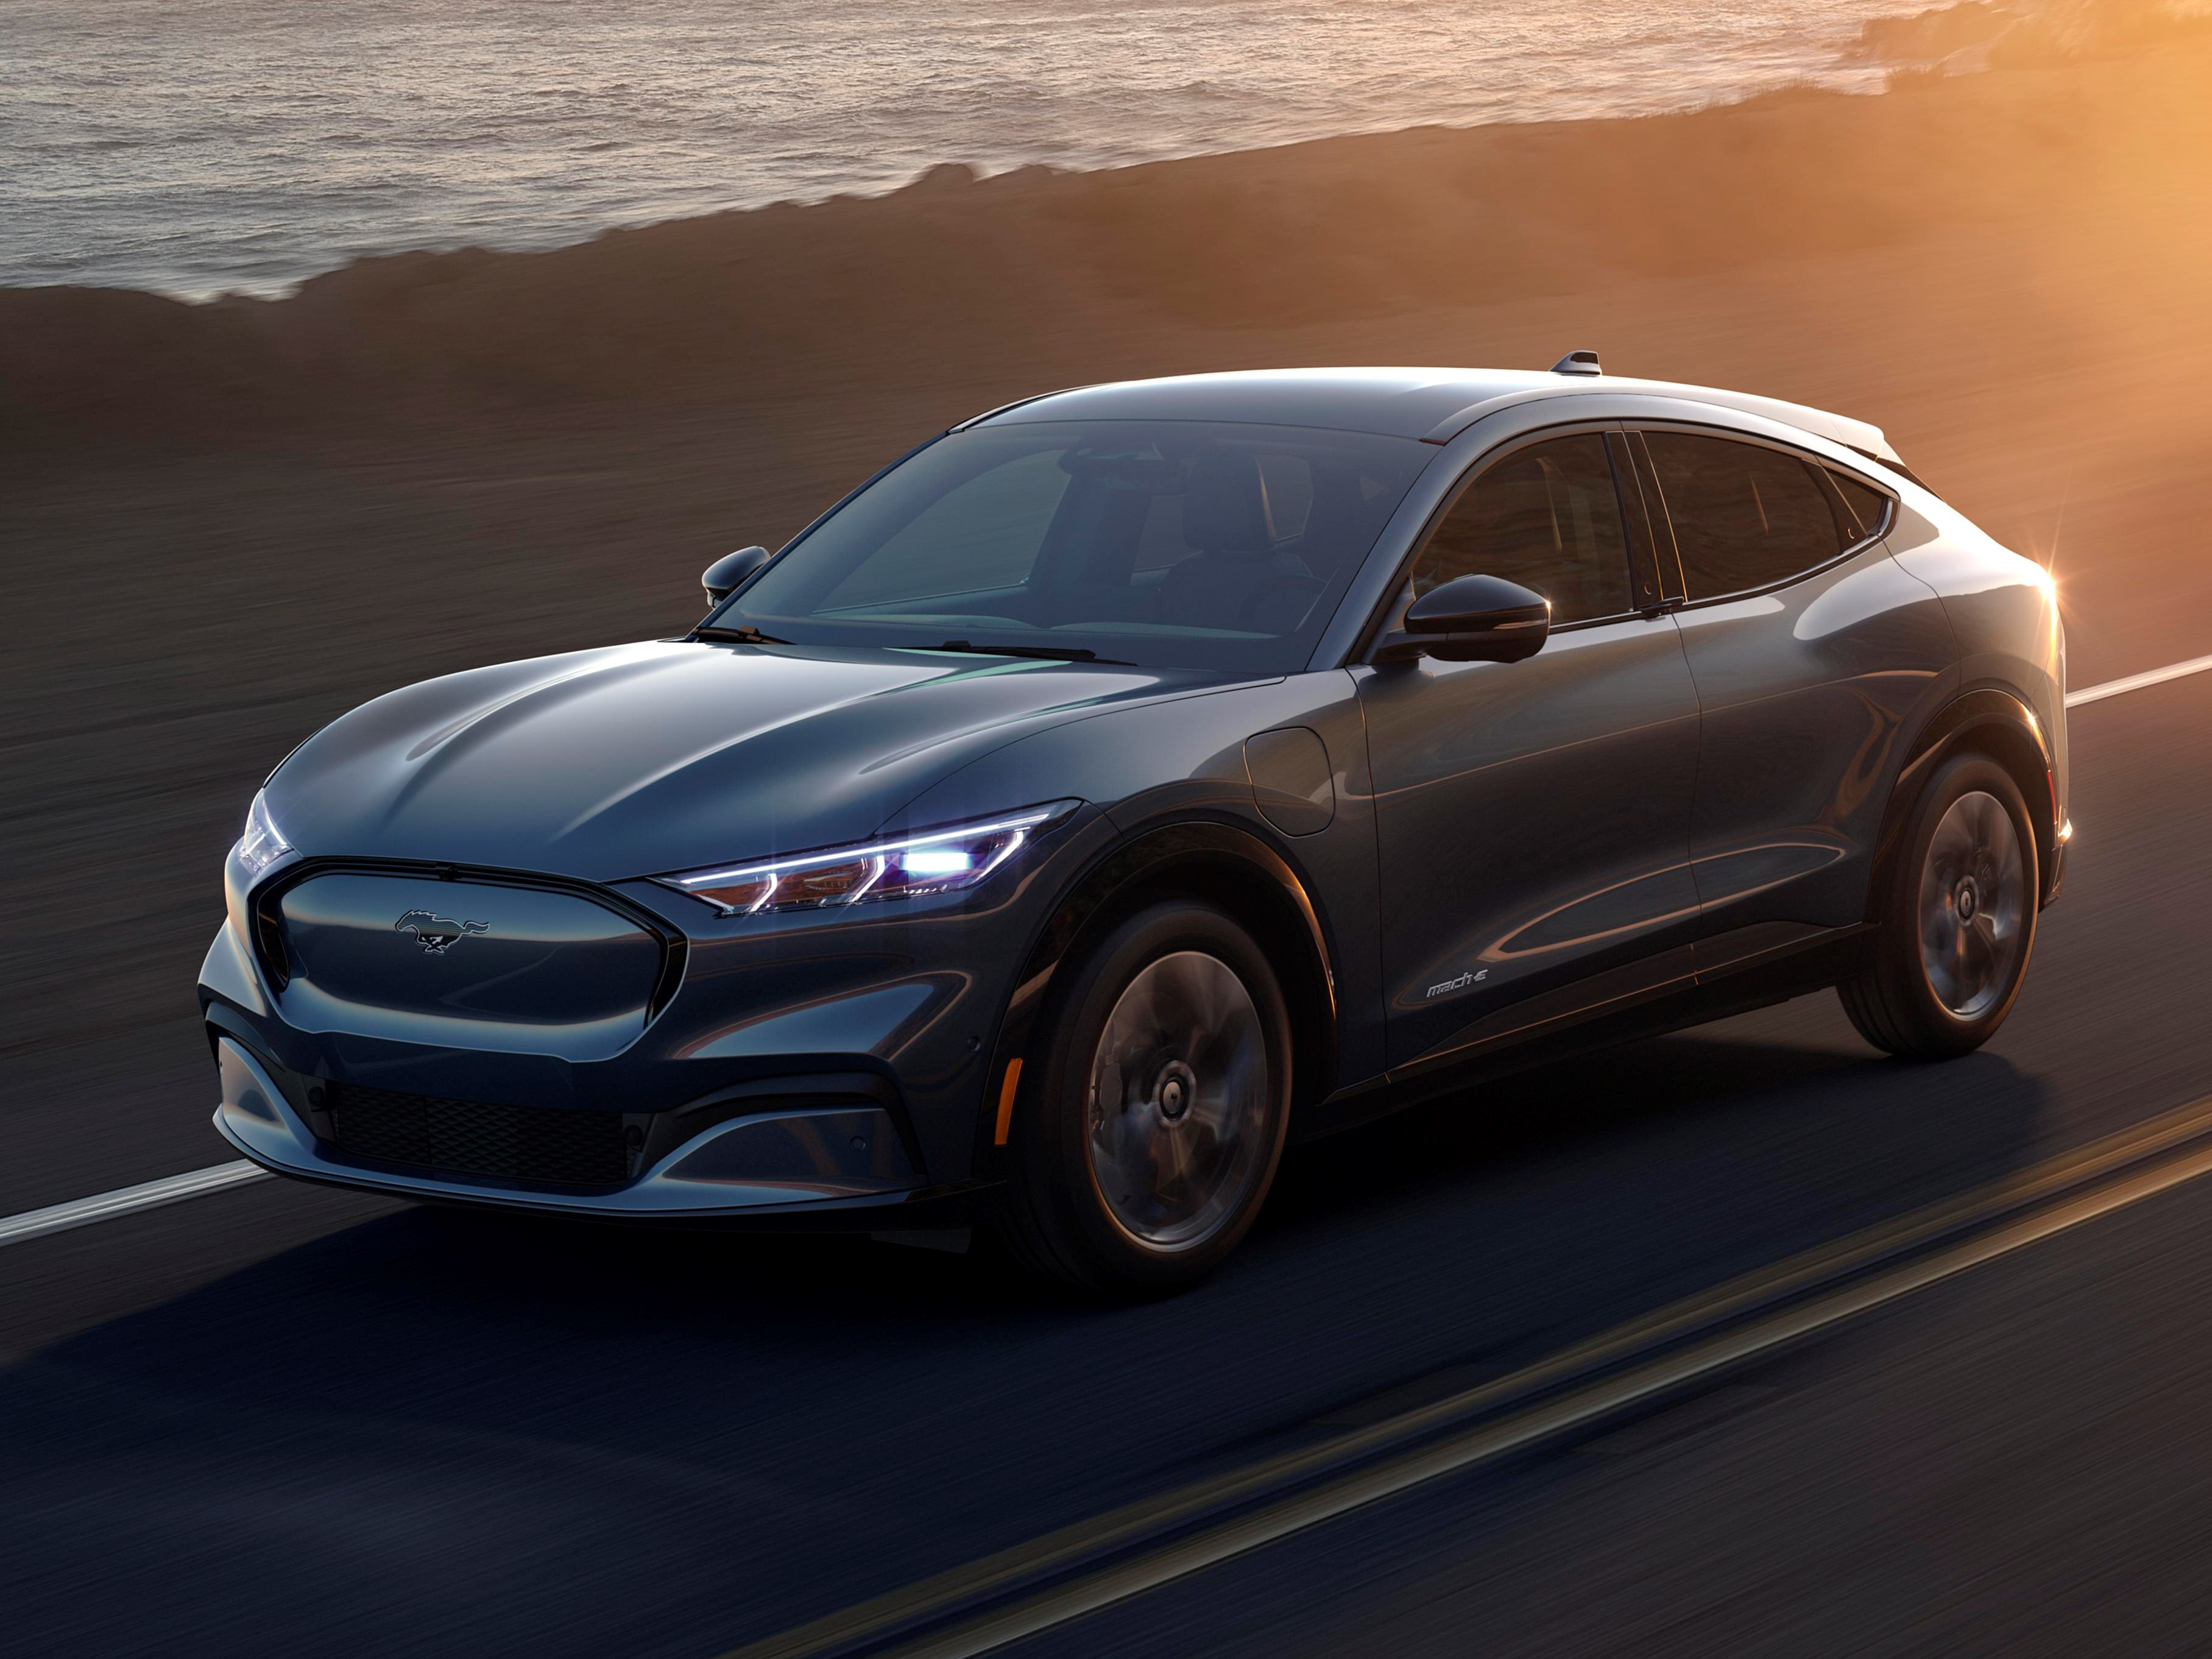 Best Awd Cars 2021 Class of 2021: The New and Redesigned Cars, Trucks and SUVs